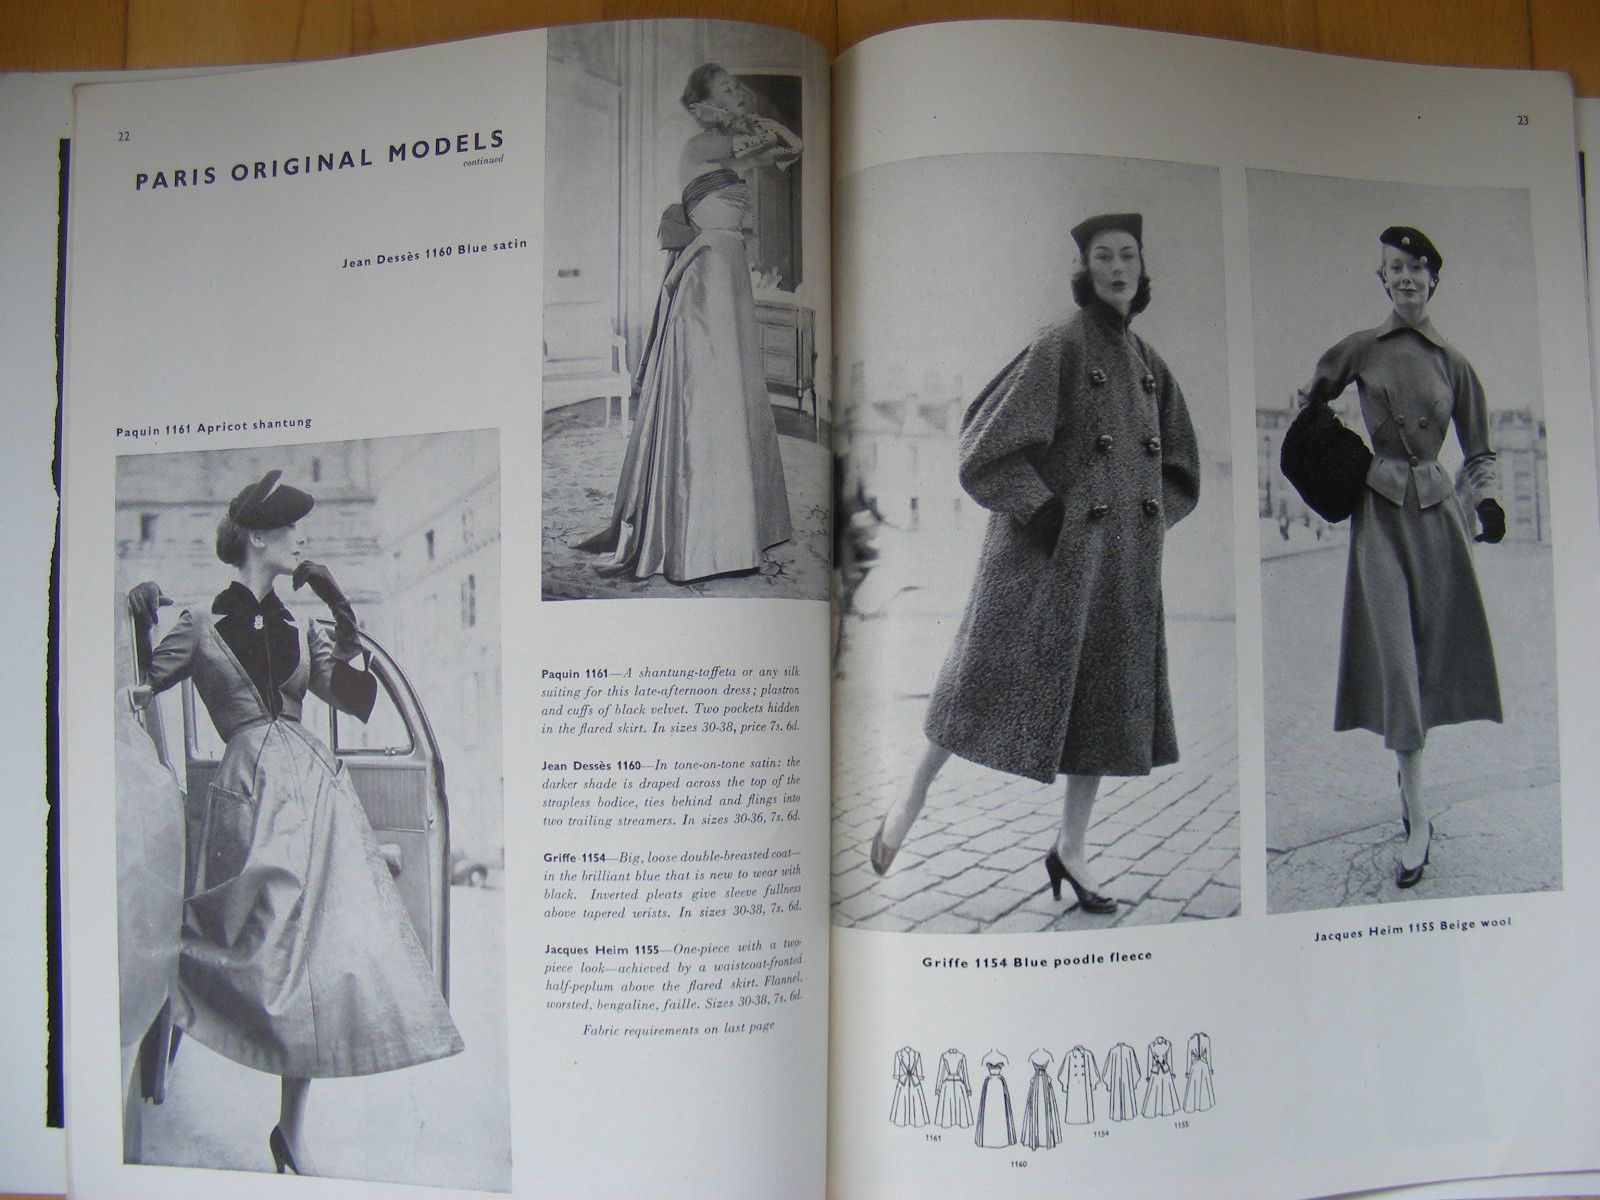 Vogue Pattern Book, December-January 1951-1952 featuring Vogue 1161 by Paquin and 1160 by Jean Dessès on the left page, 1154 by Jacques Griffe and 1155 by Jacques Heim